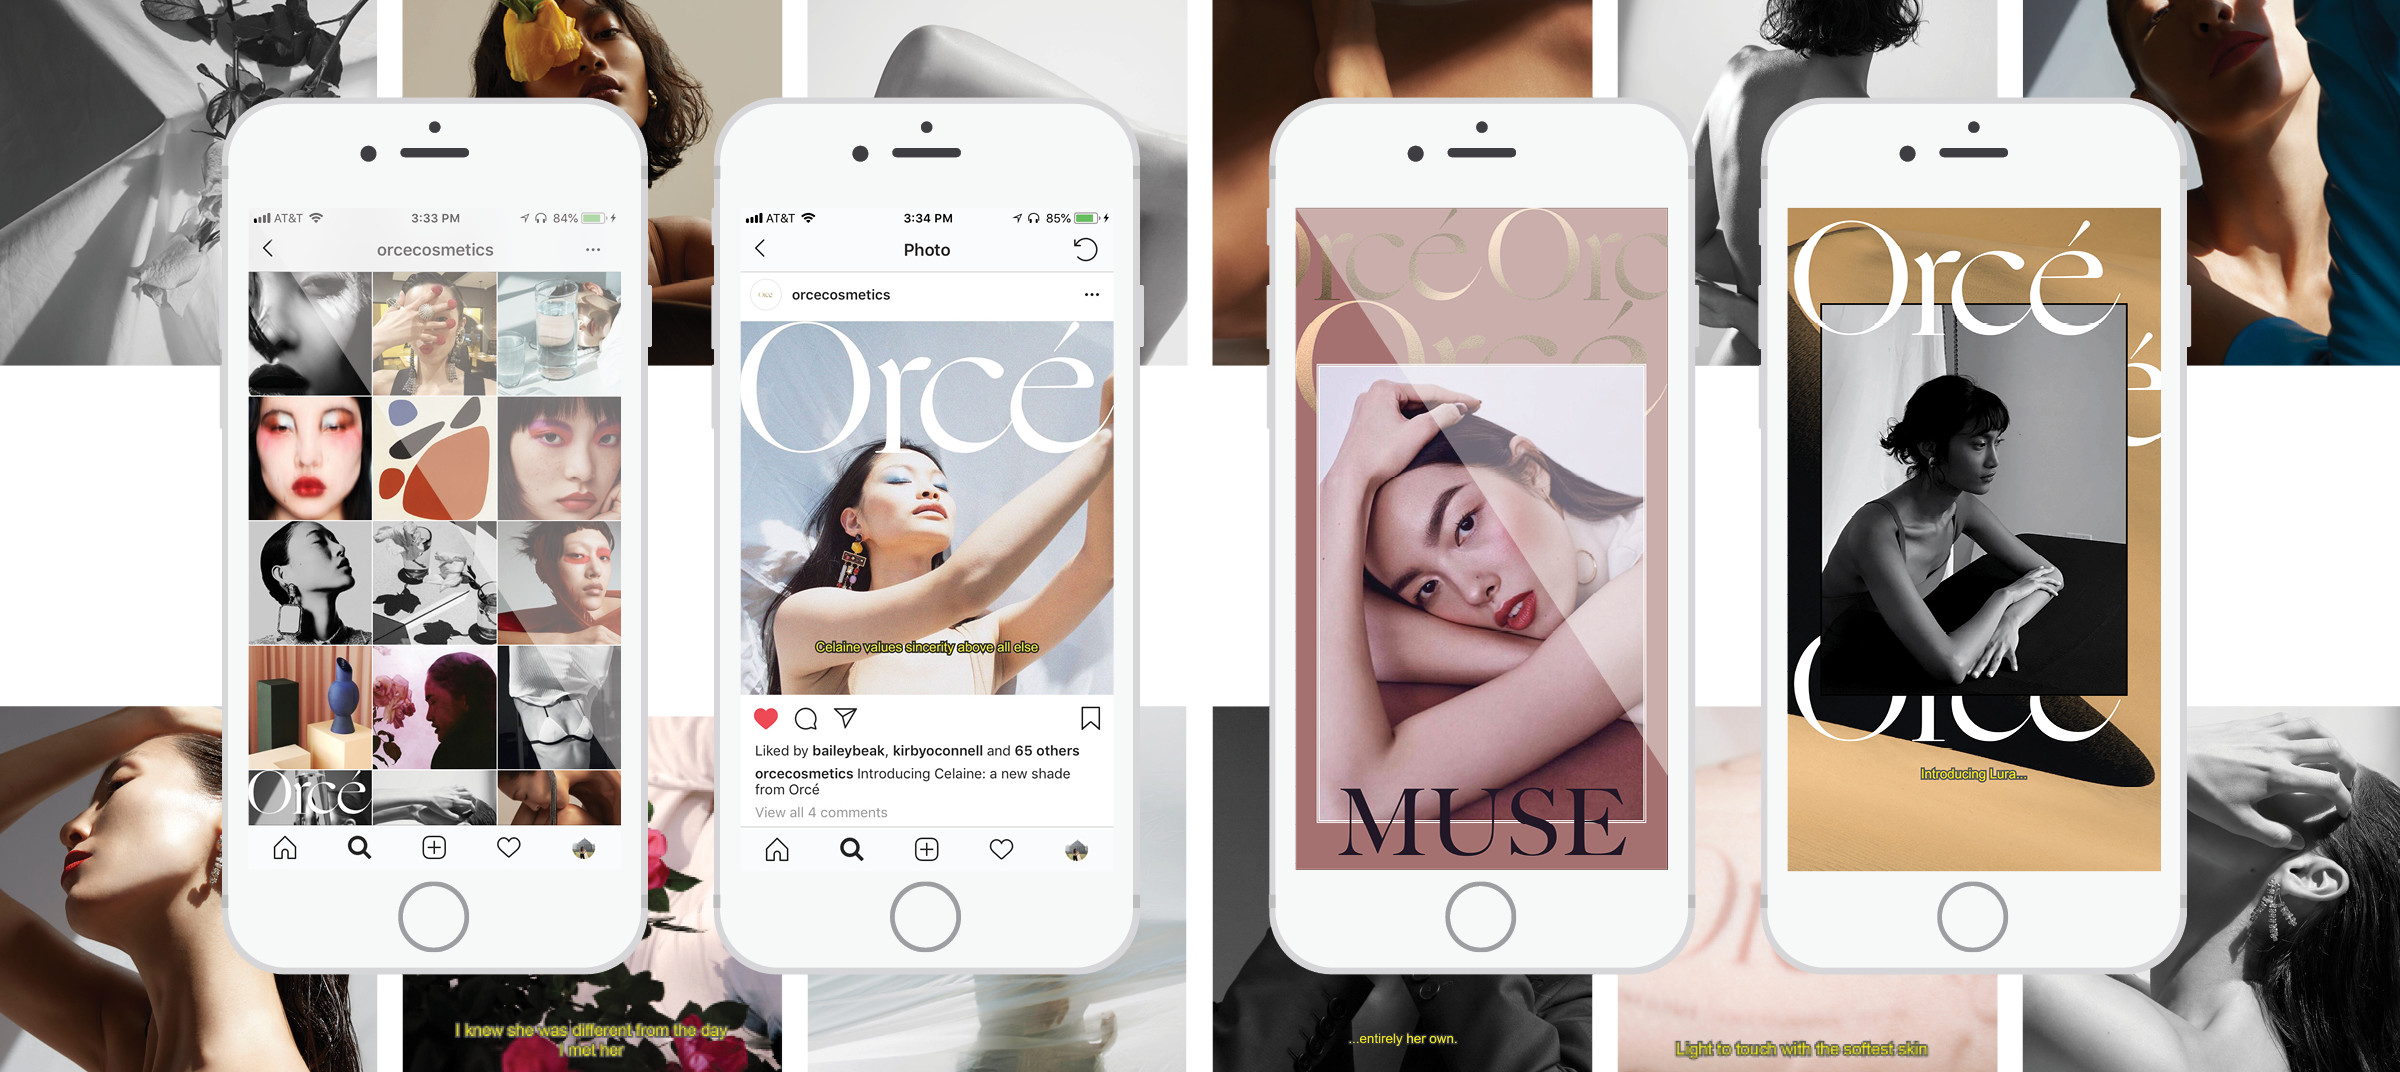 Orcé's social media campaign displayed on phone screen